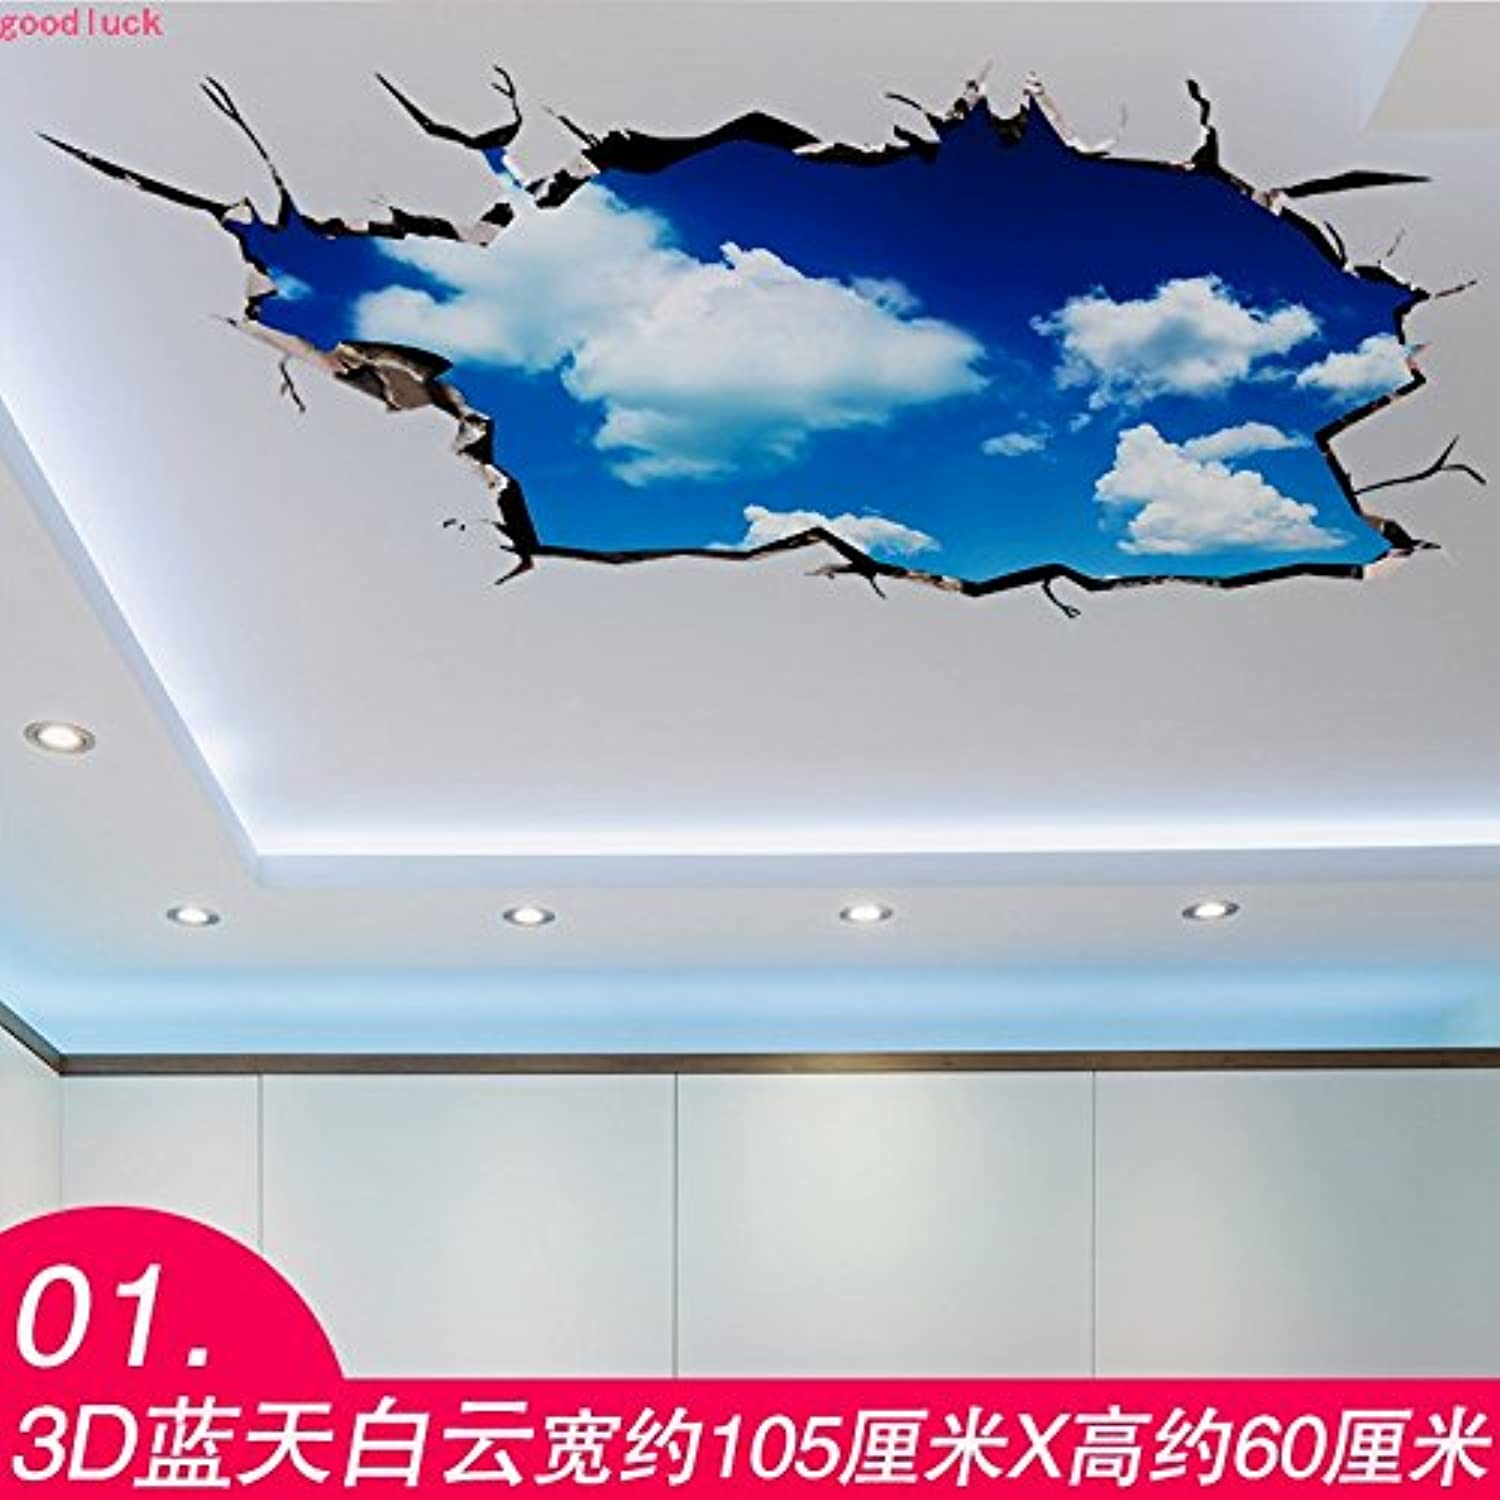 Znzbzt Bedroom Living Room Decoration Ideas Wallpaper Ceiling Wall Sticker Mural,01 3D Lantian Baiyun, King